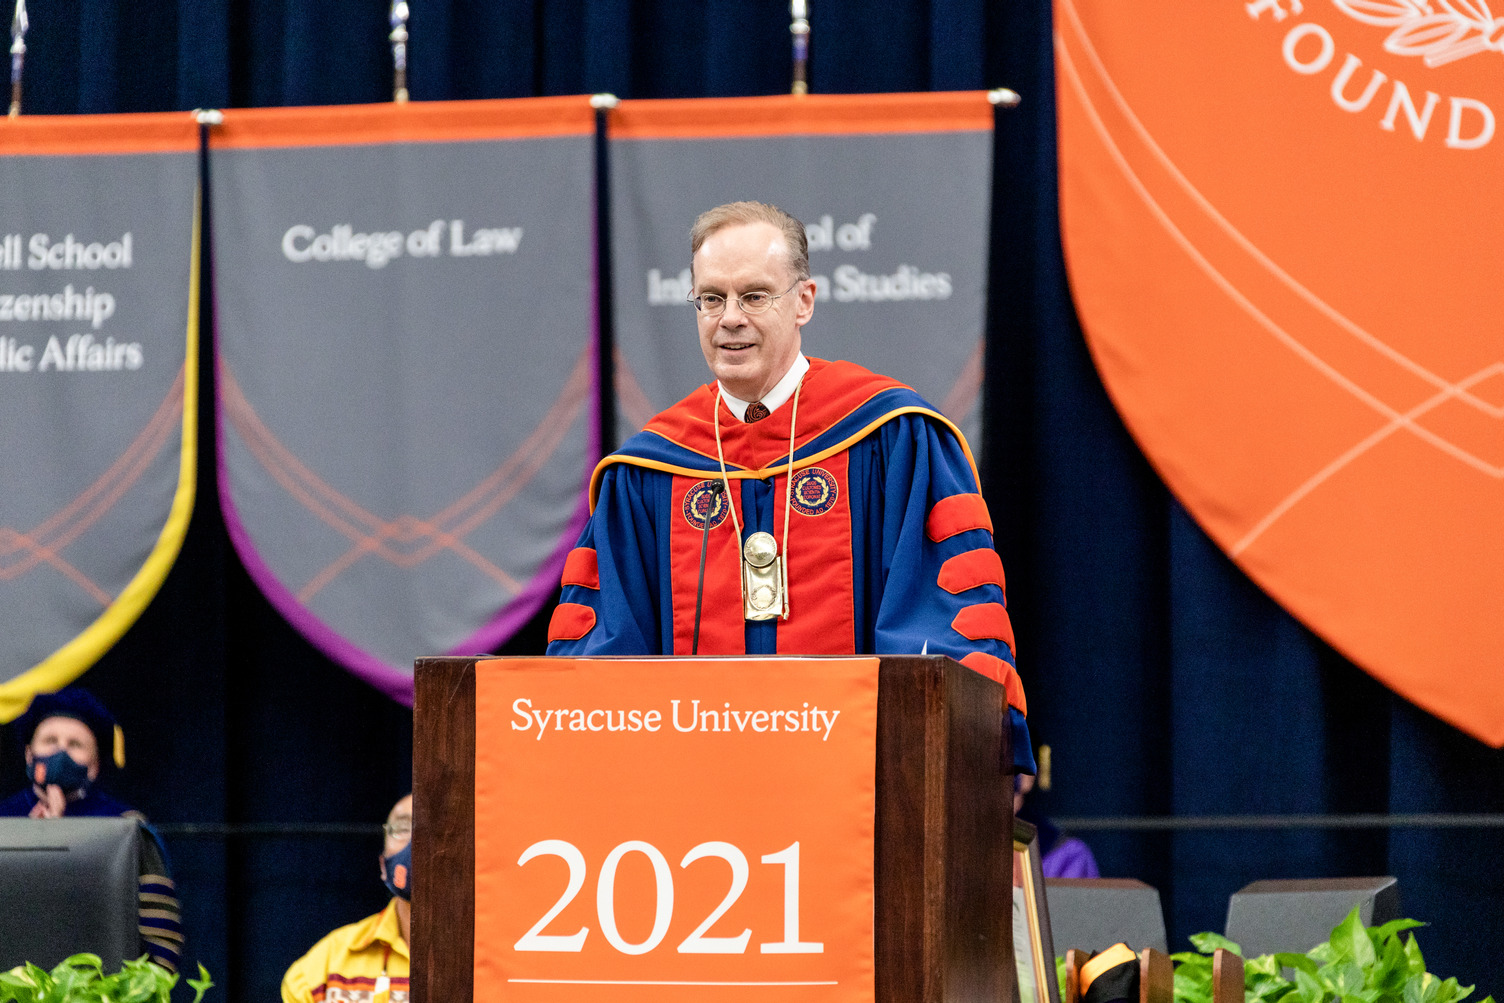 Chancellor Syverud speaks from the podium at Commencement 2021